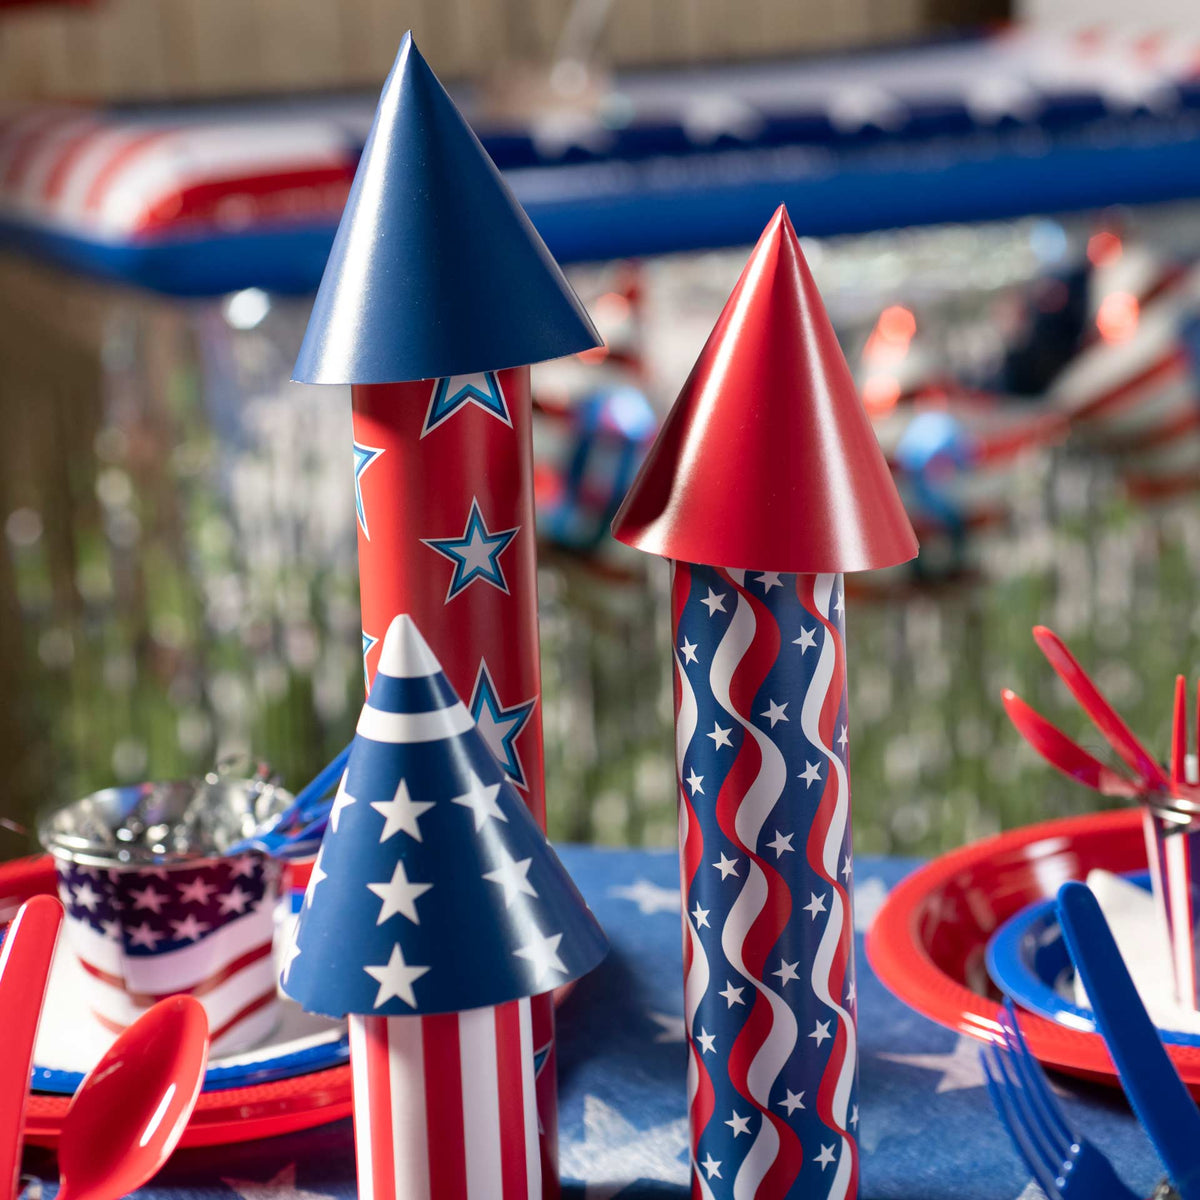 3D Firecracker Centerpiece